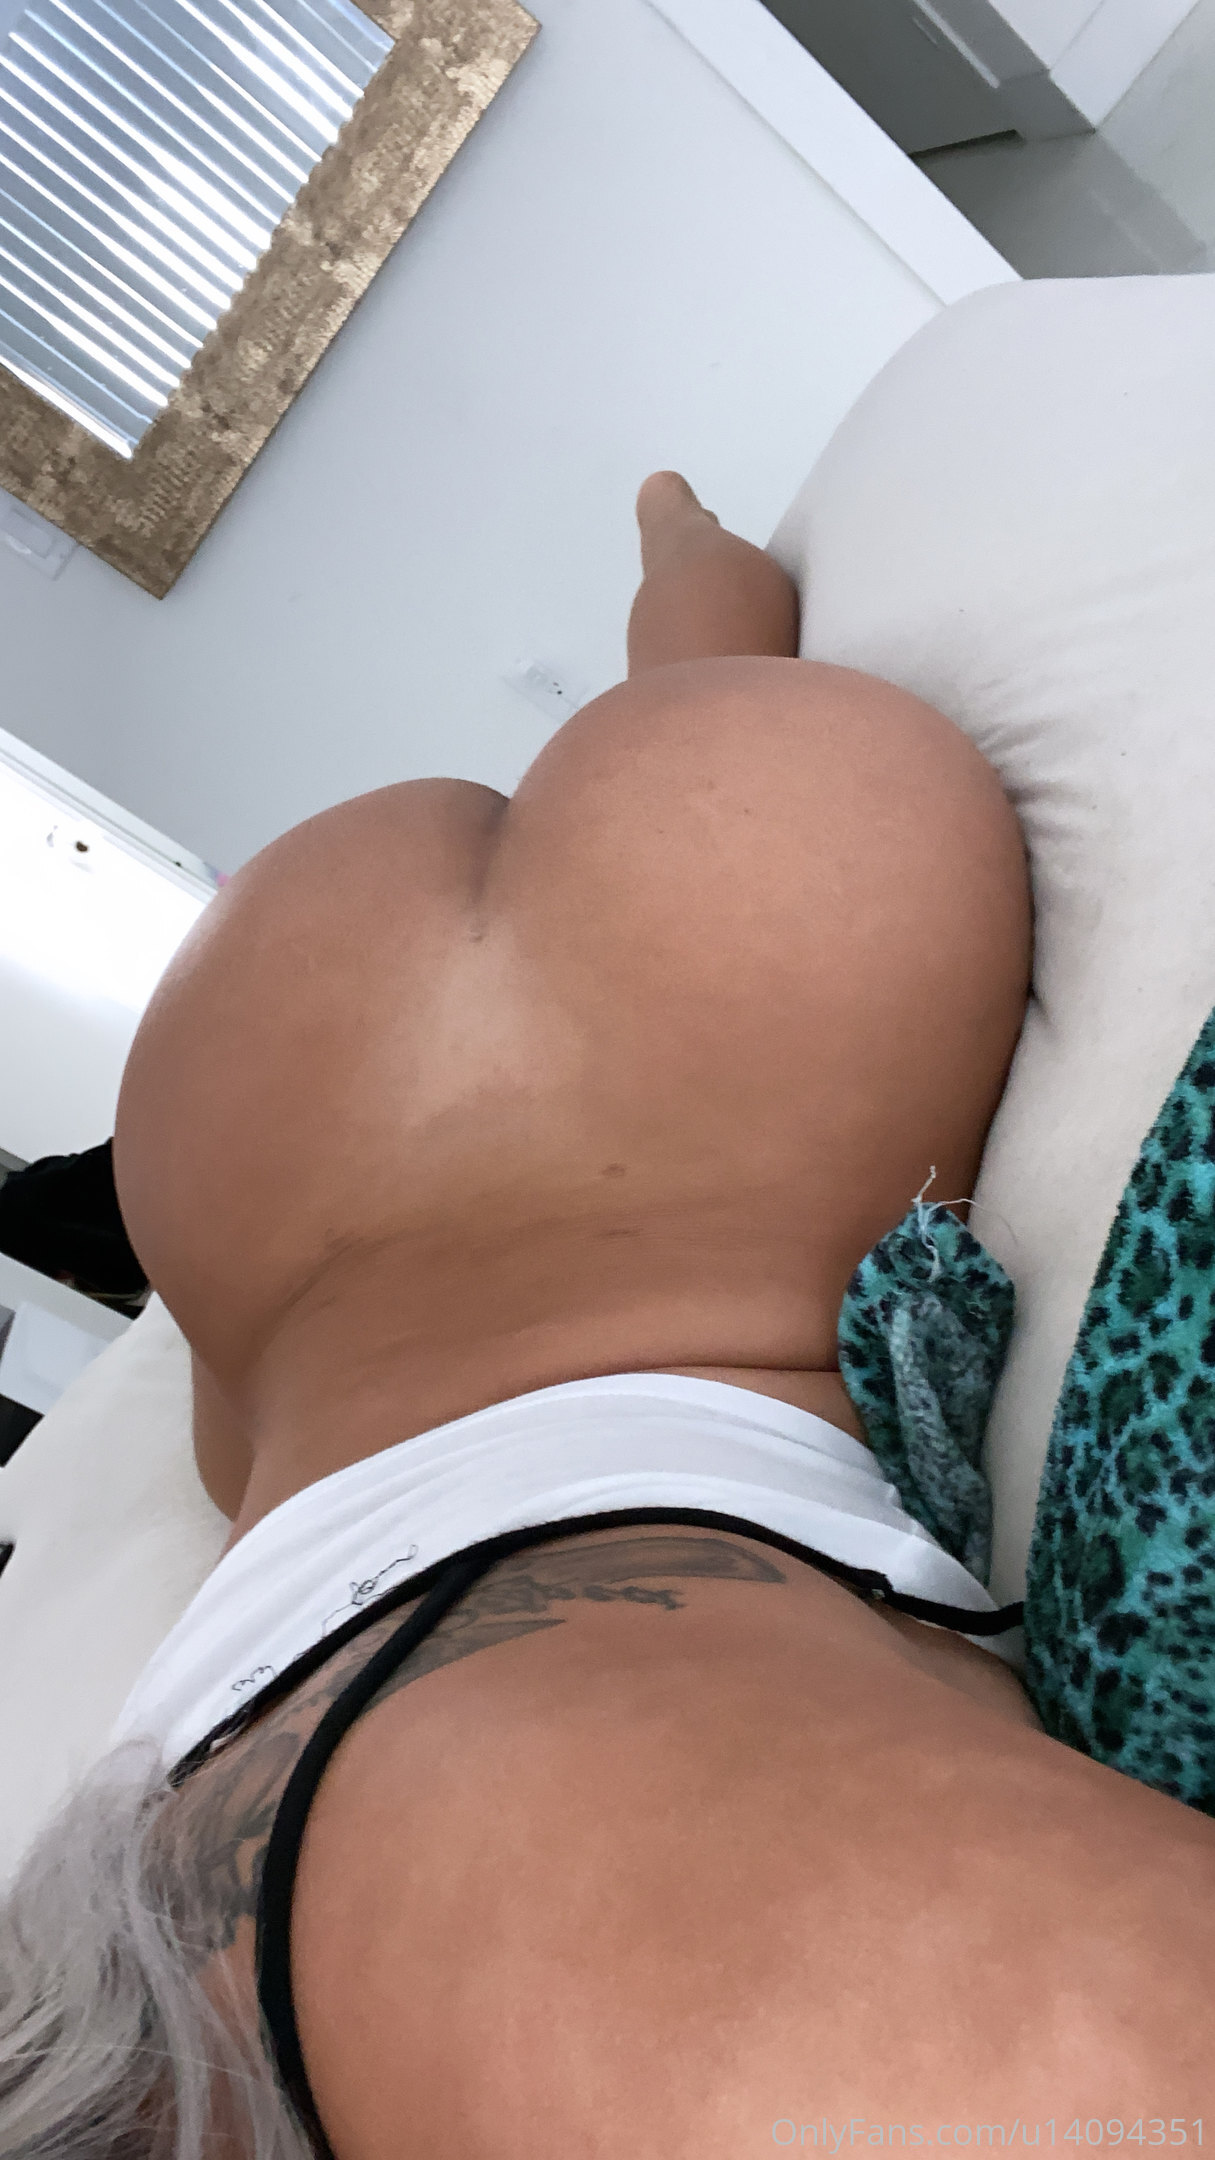 Russian Cream Porn OnlyFans Leaked Nudes 73